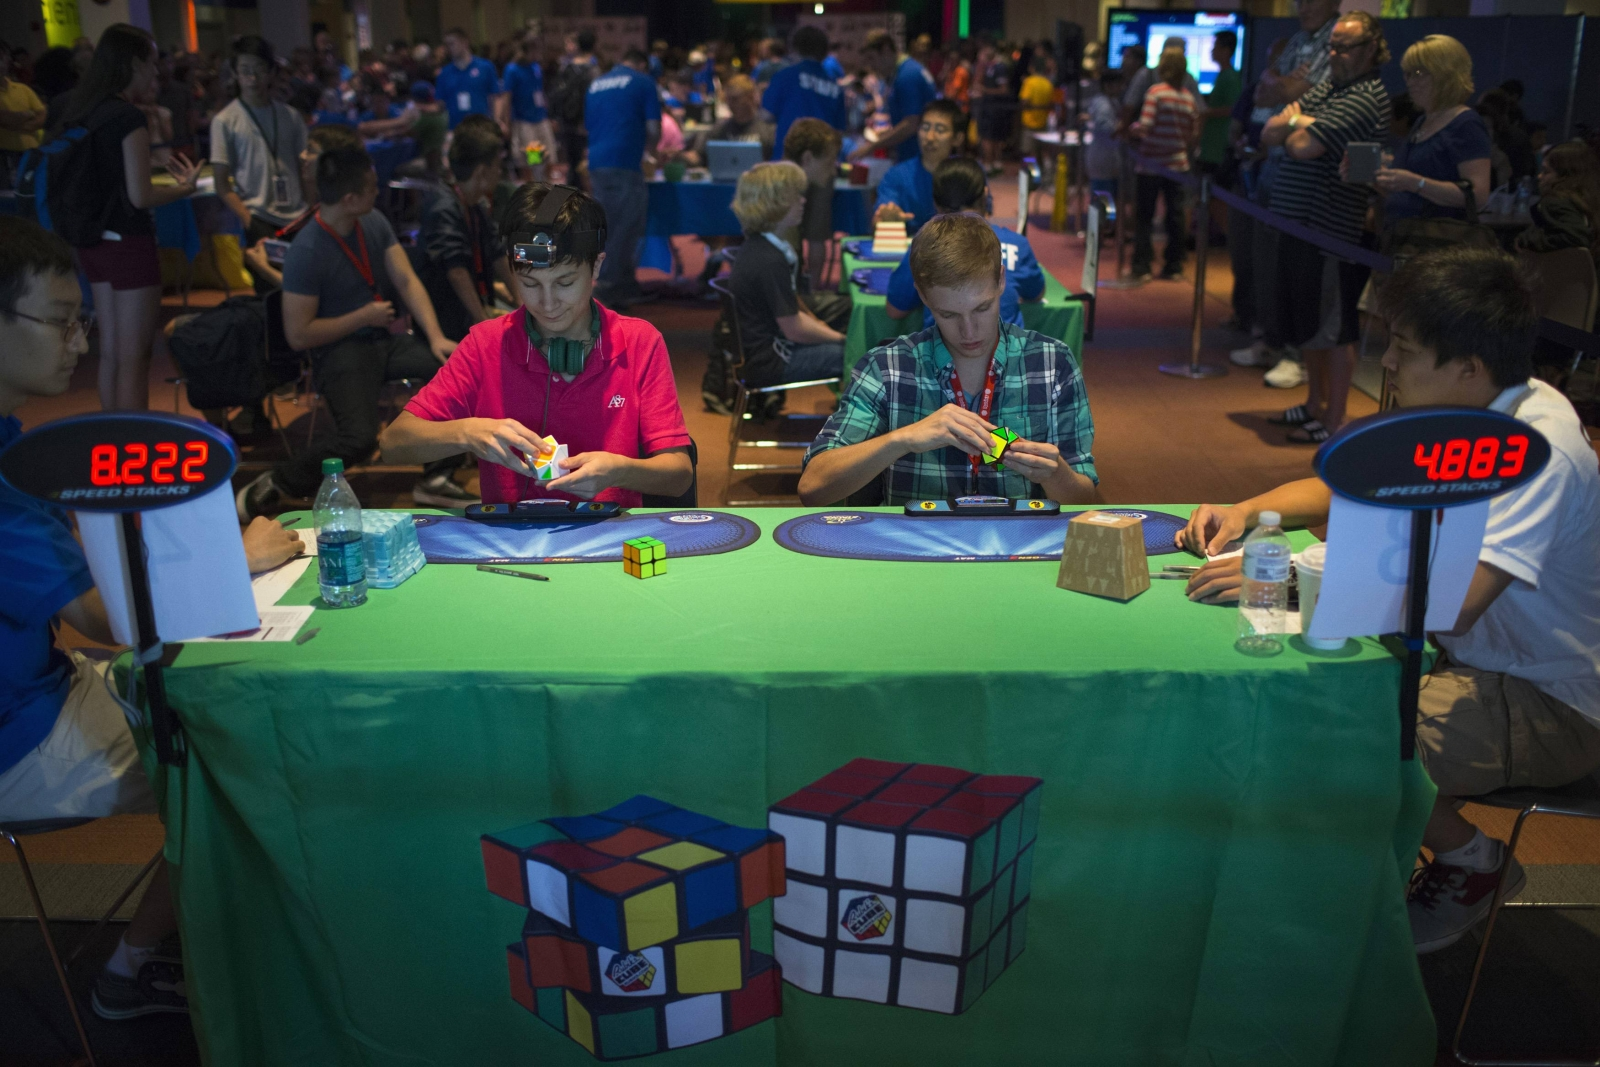 Participants compete at the National Rubiks Cube Championship.